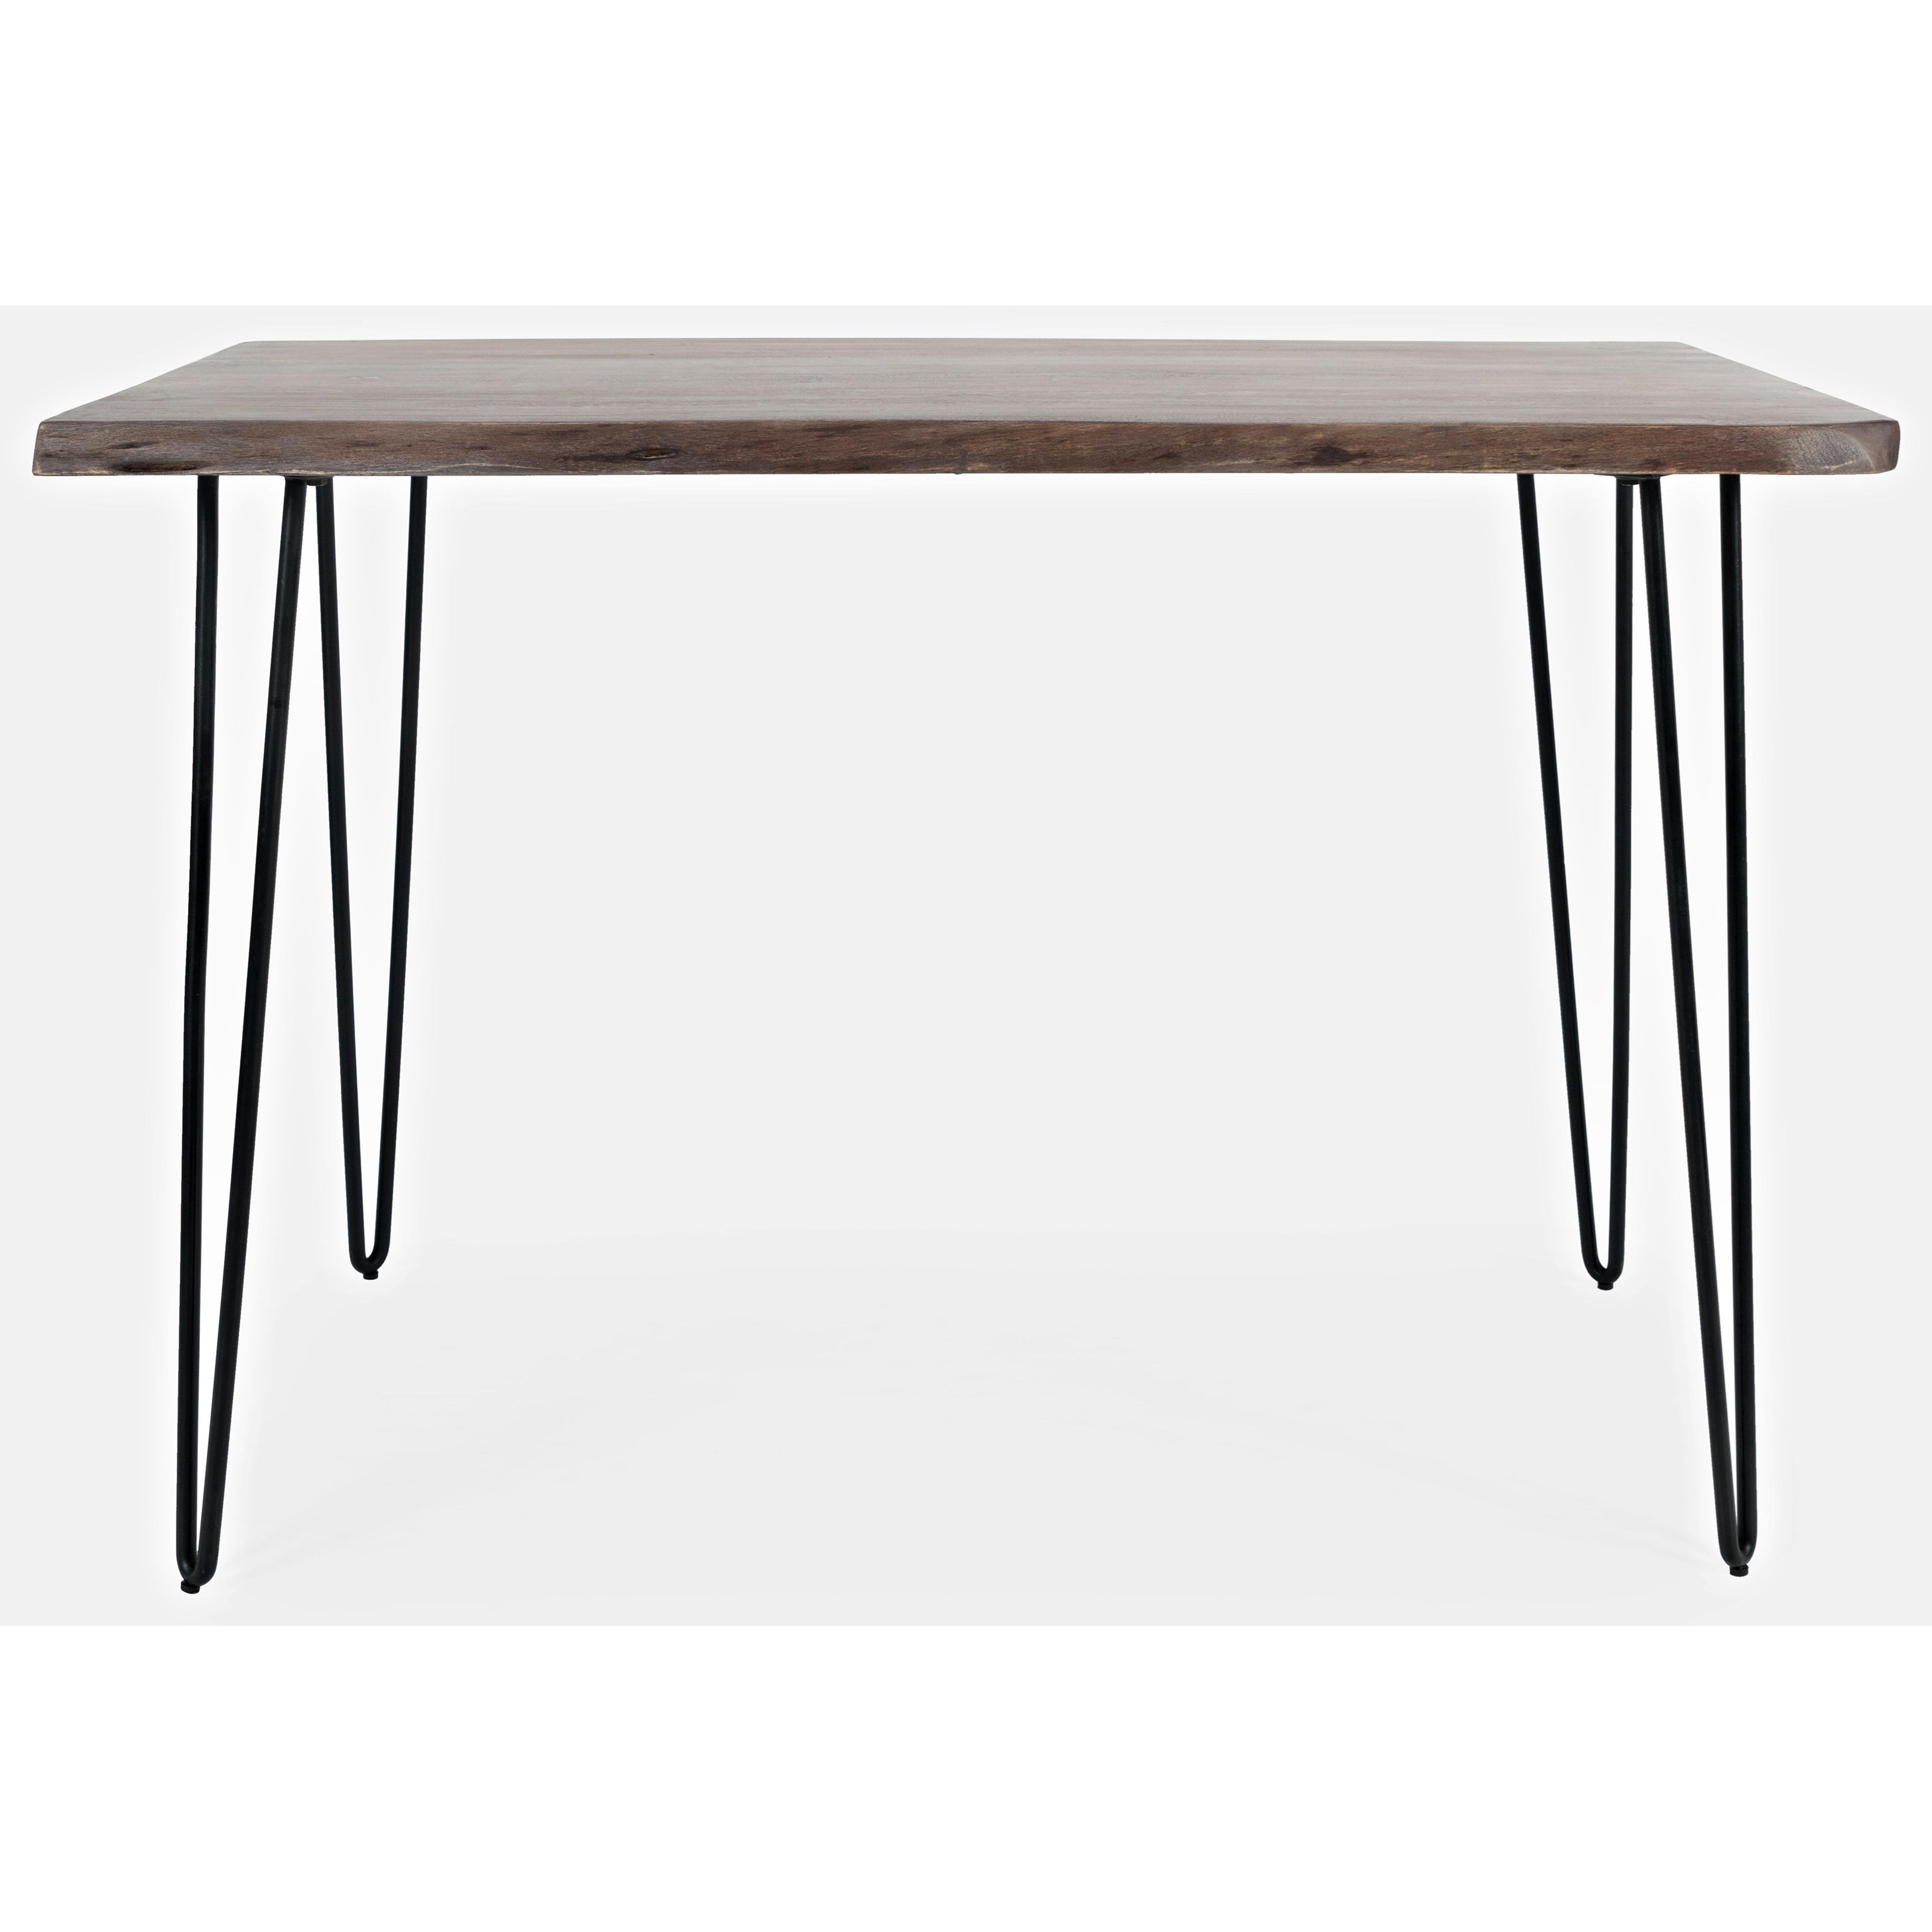 """Nature's Edge Live Edge Counter Height Table 52"""" by Jofran at Jofran"""